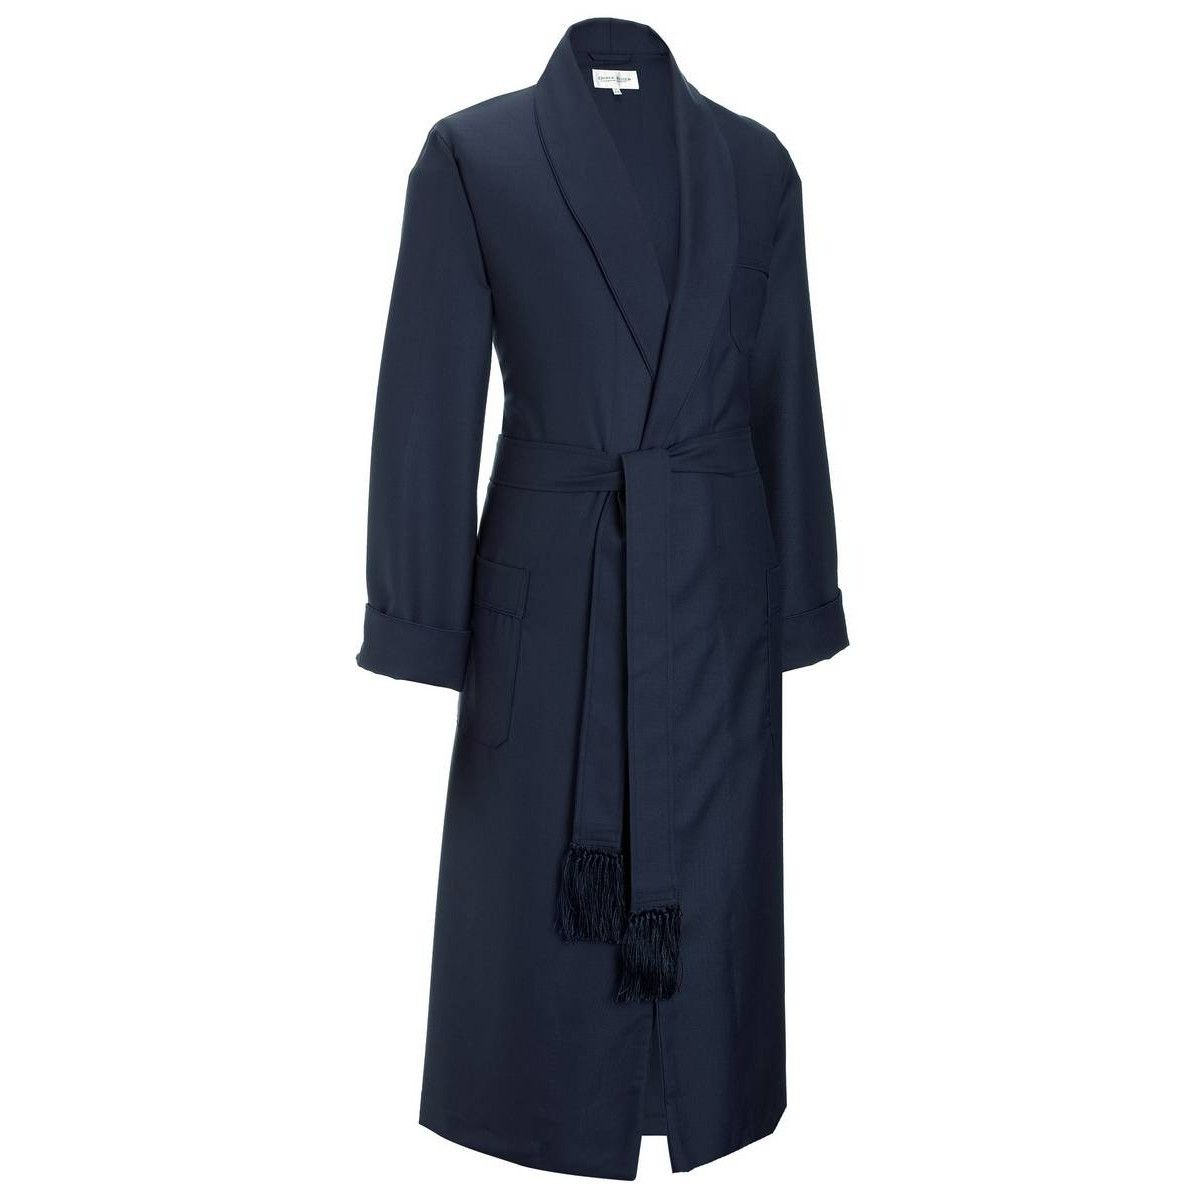 Derek Rose Westminster 2 Pure Wool Dressing Gown - Navy | Derek ...